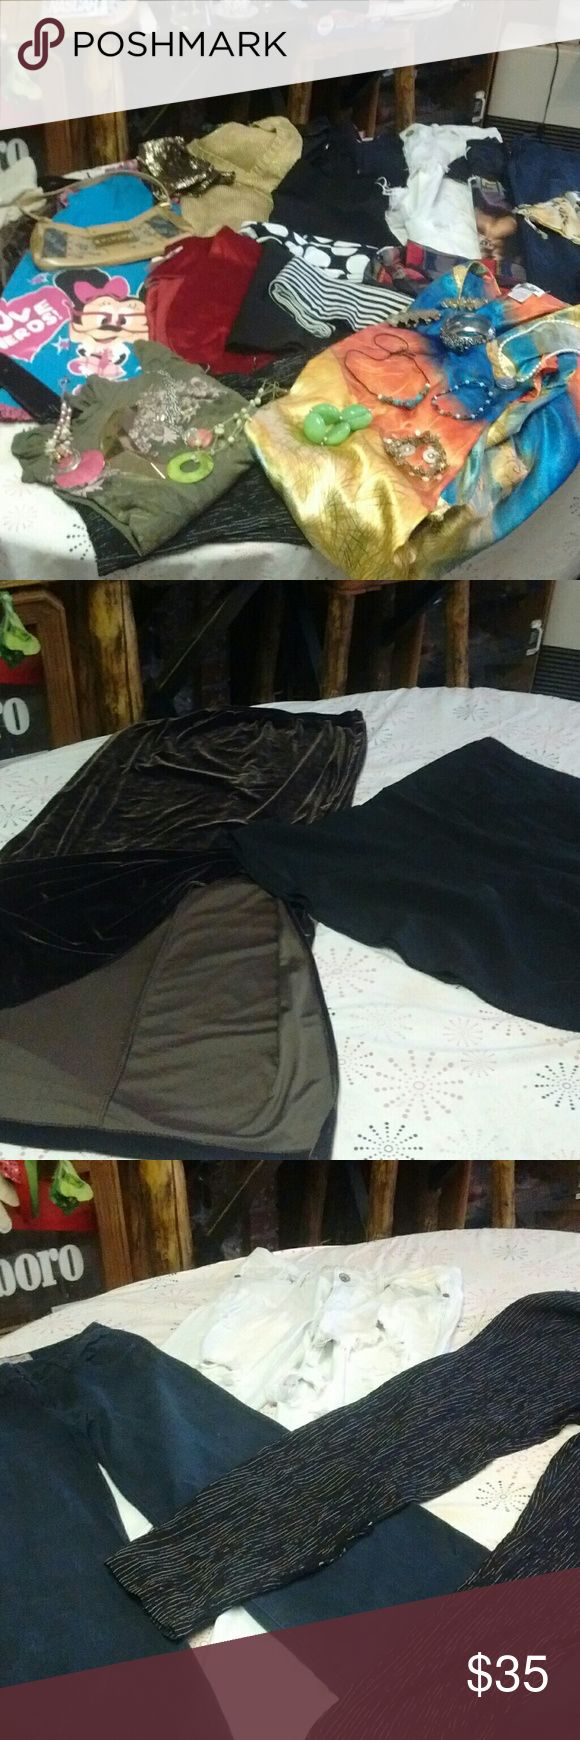 This is for my ladys Who think that I can't fit them with anything to wear we'll check this out I believe I pulled it together for you to look good no doubt....This consist of 2 skirts that r sized L ND 11,3 pants 11,L @13,2 sweaters,B L,4 tank top L,2 tee shirts L,1 Mickey night shirt L,1 dress shirt 26/28,4 scarfs,2belts,1 one size kimono,2 purses,ND 1 pair of 9 1/2 Willi Smith's pumps ND the jewelry that is post ND I may have forgotten one or two things ......But if u like wht u see you…